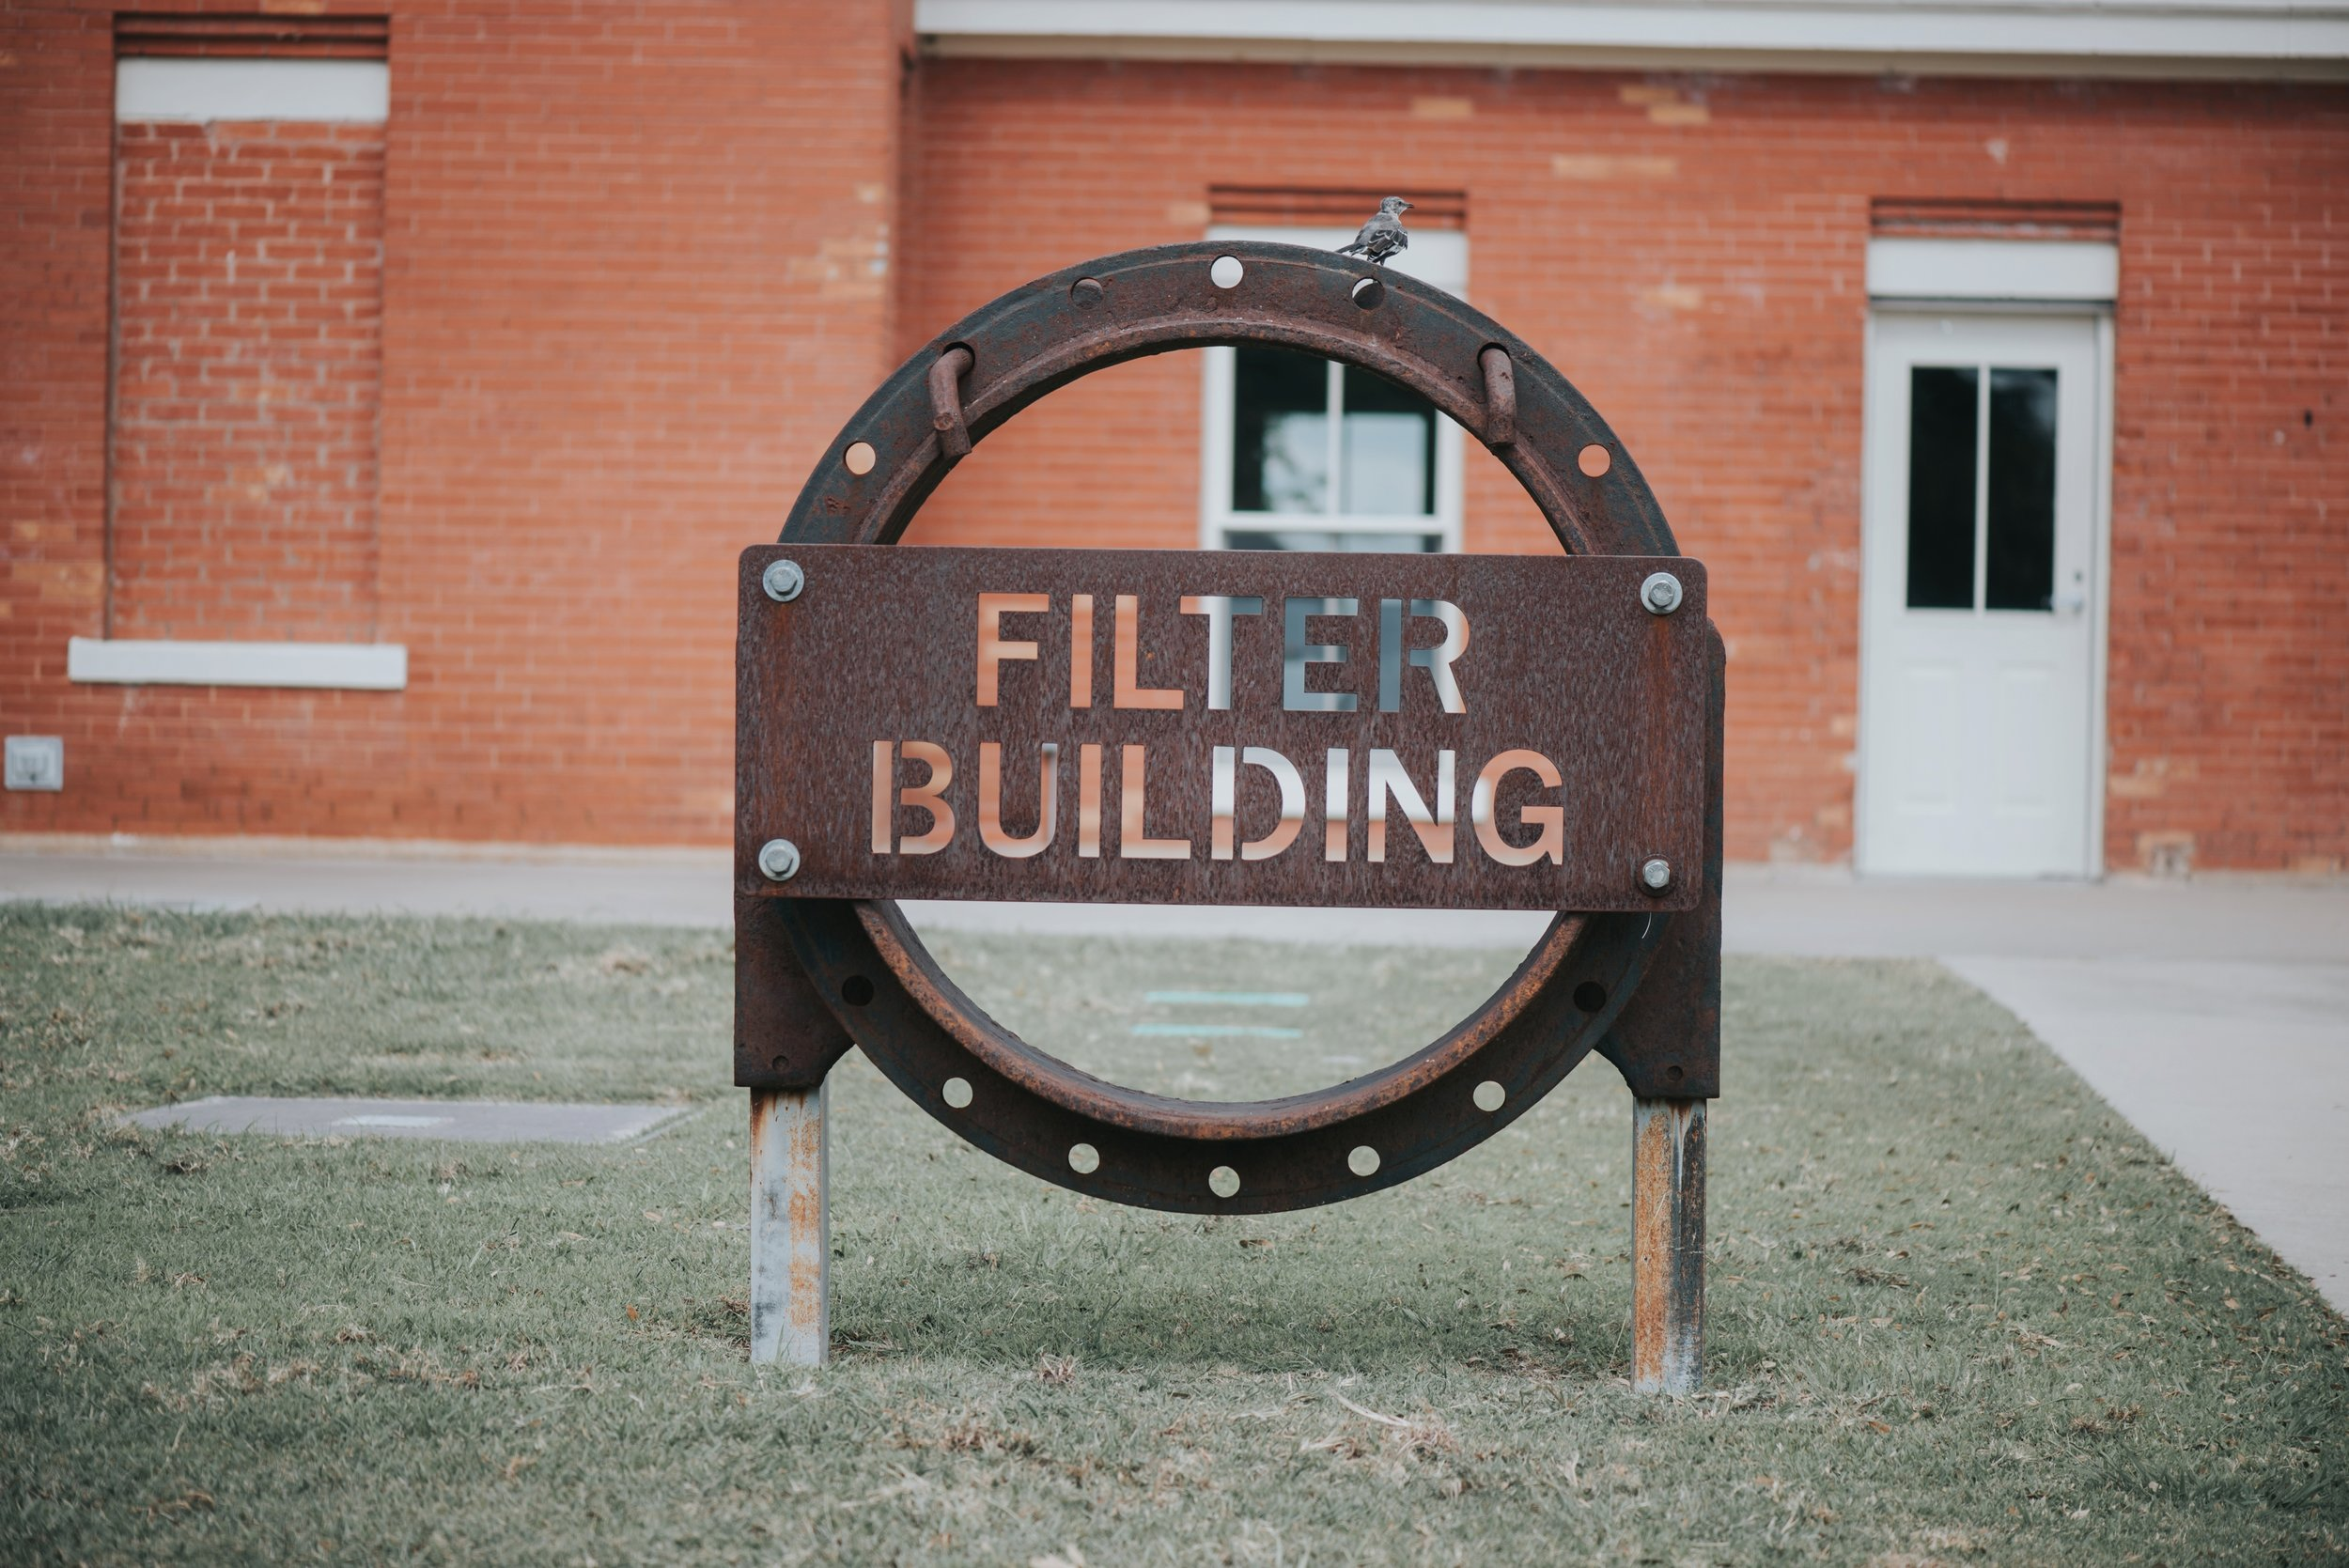 Filter-Building-Wedding-Venue-White-Rock-Lake-Dallas-Texas-Wedding-Event-Planner-Outside-Wedding01.JPG